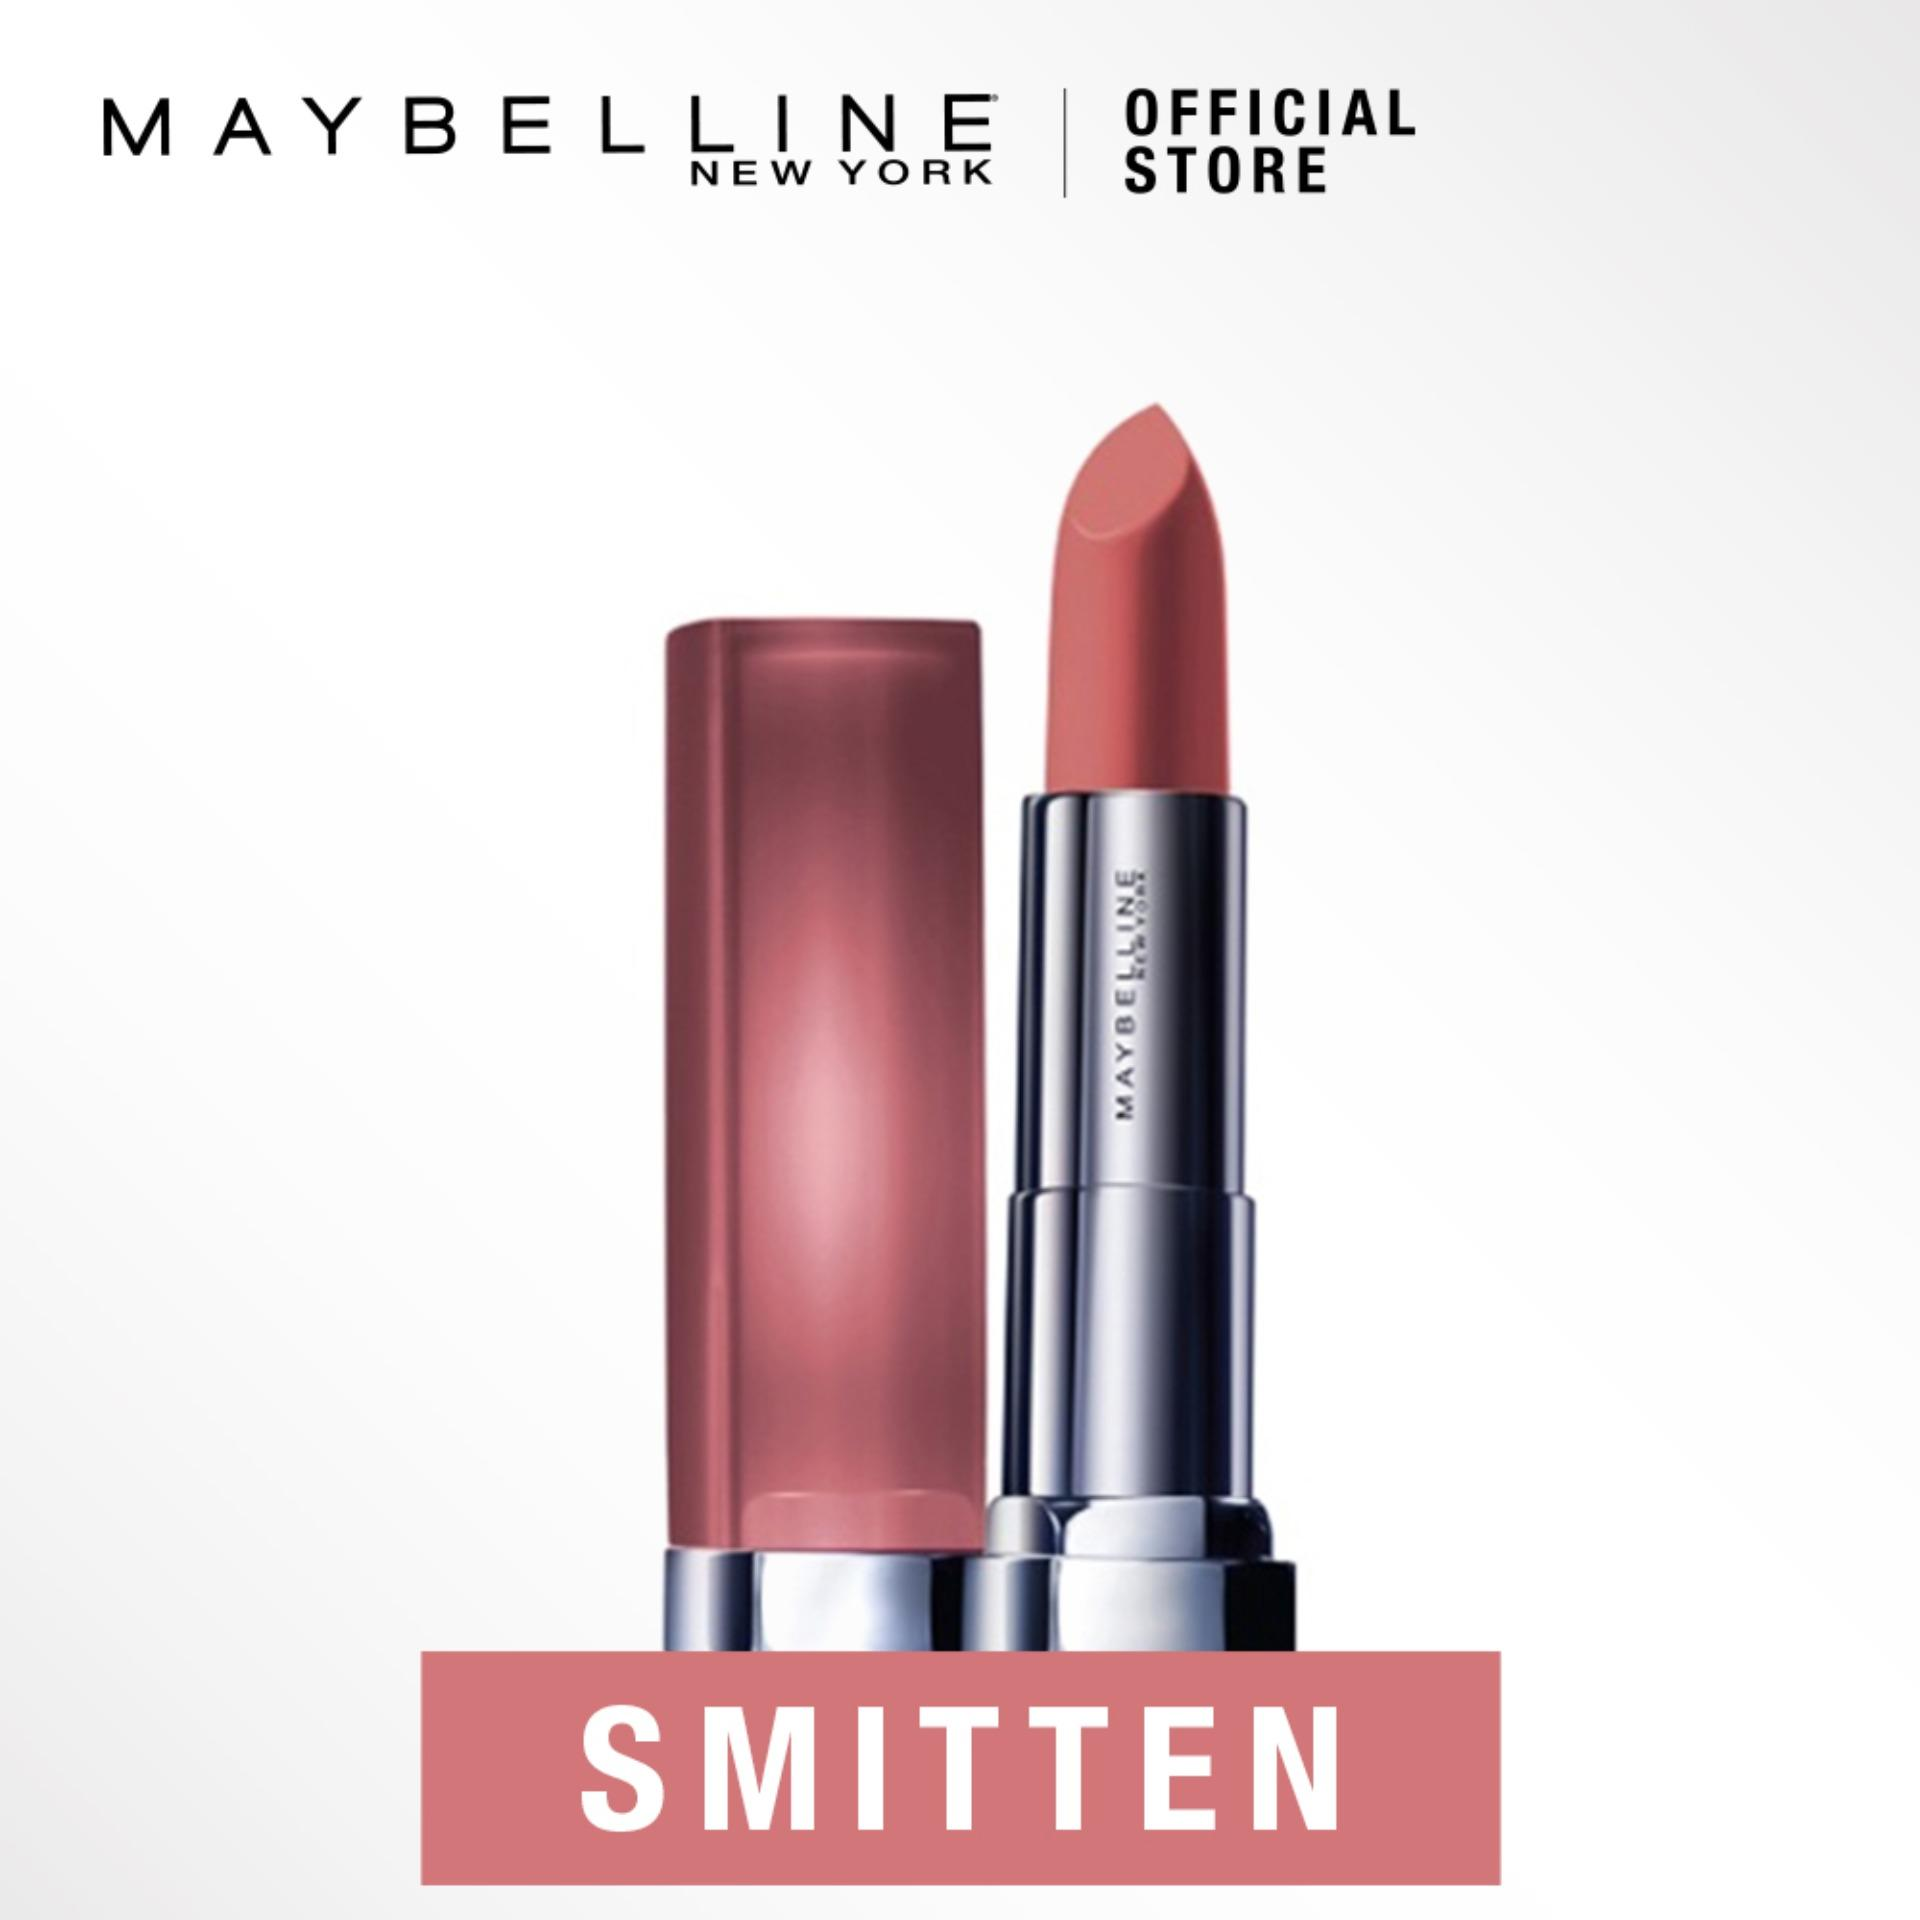 Maybelline Color Sensational Powder Matte Lipstick Inti-Mattes Nudes